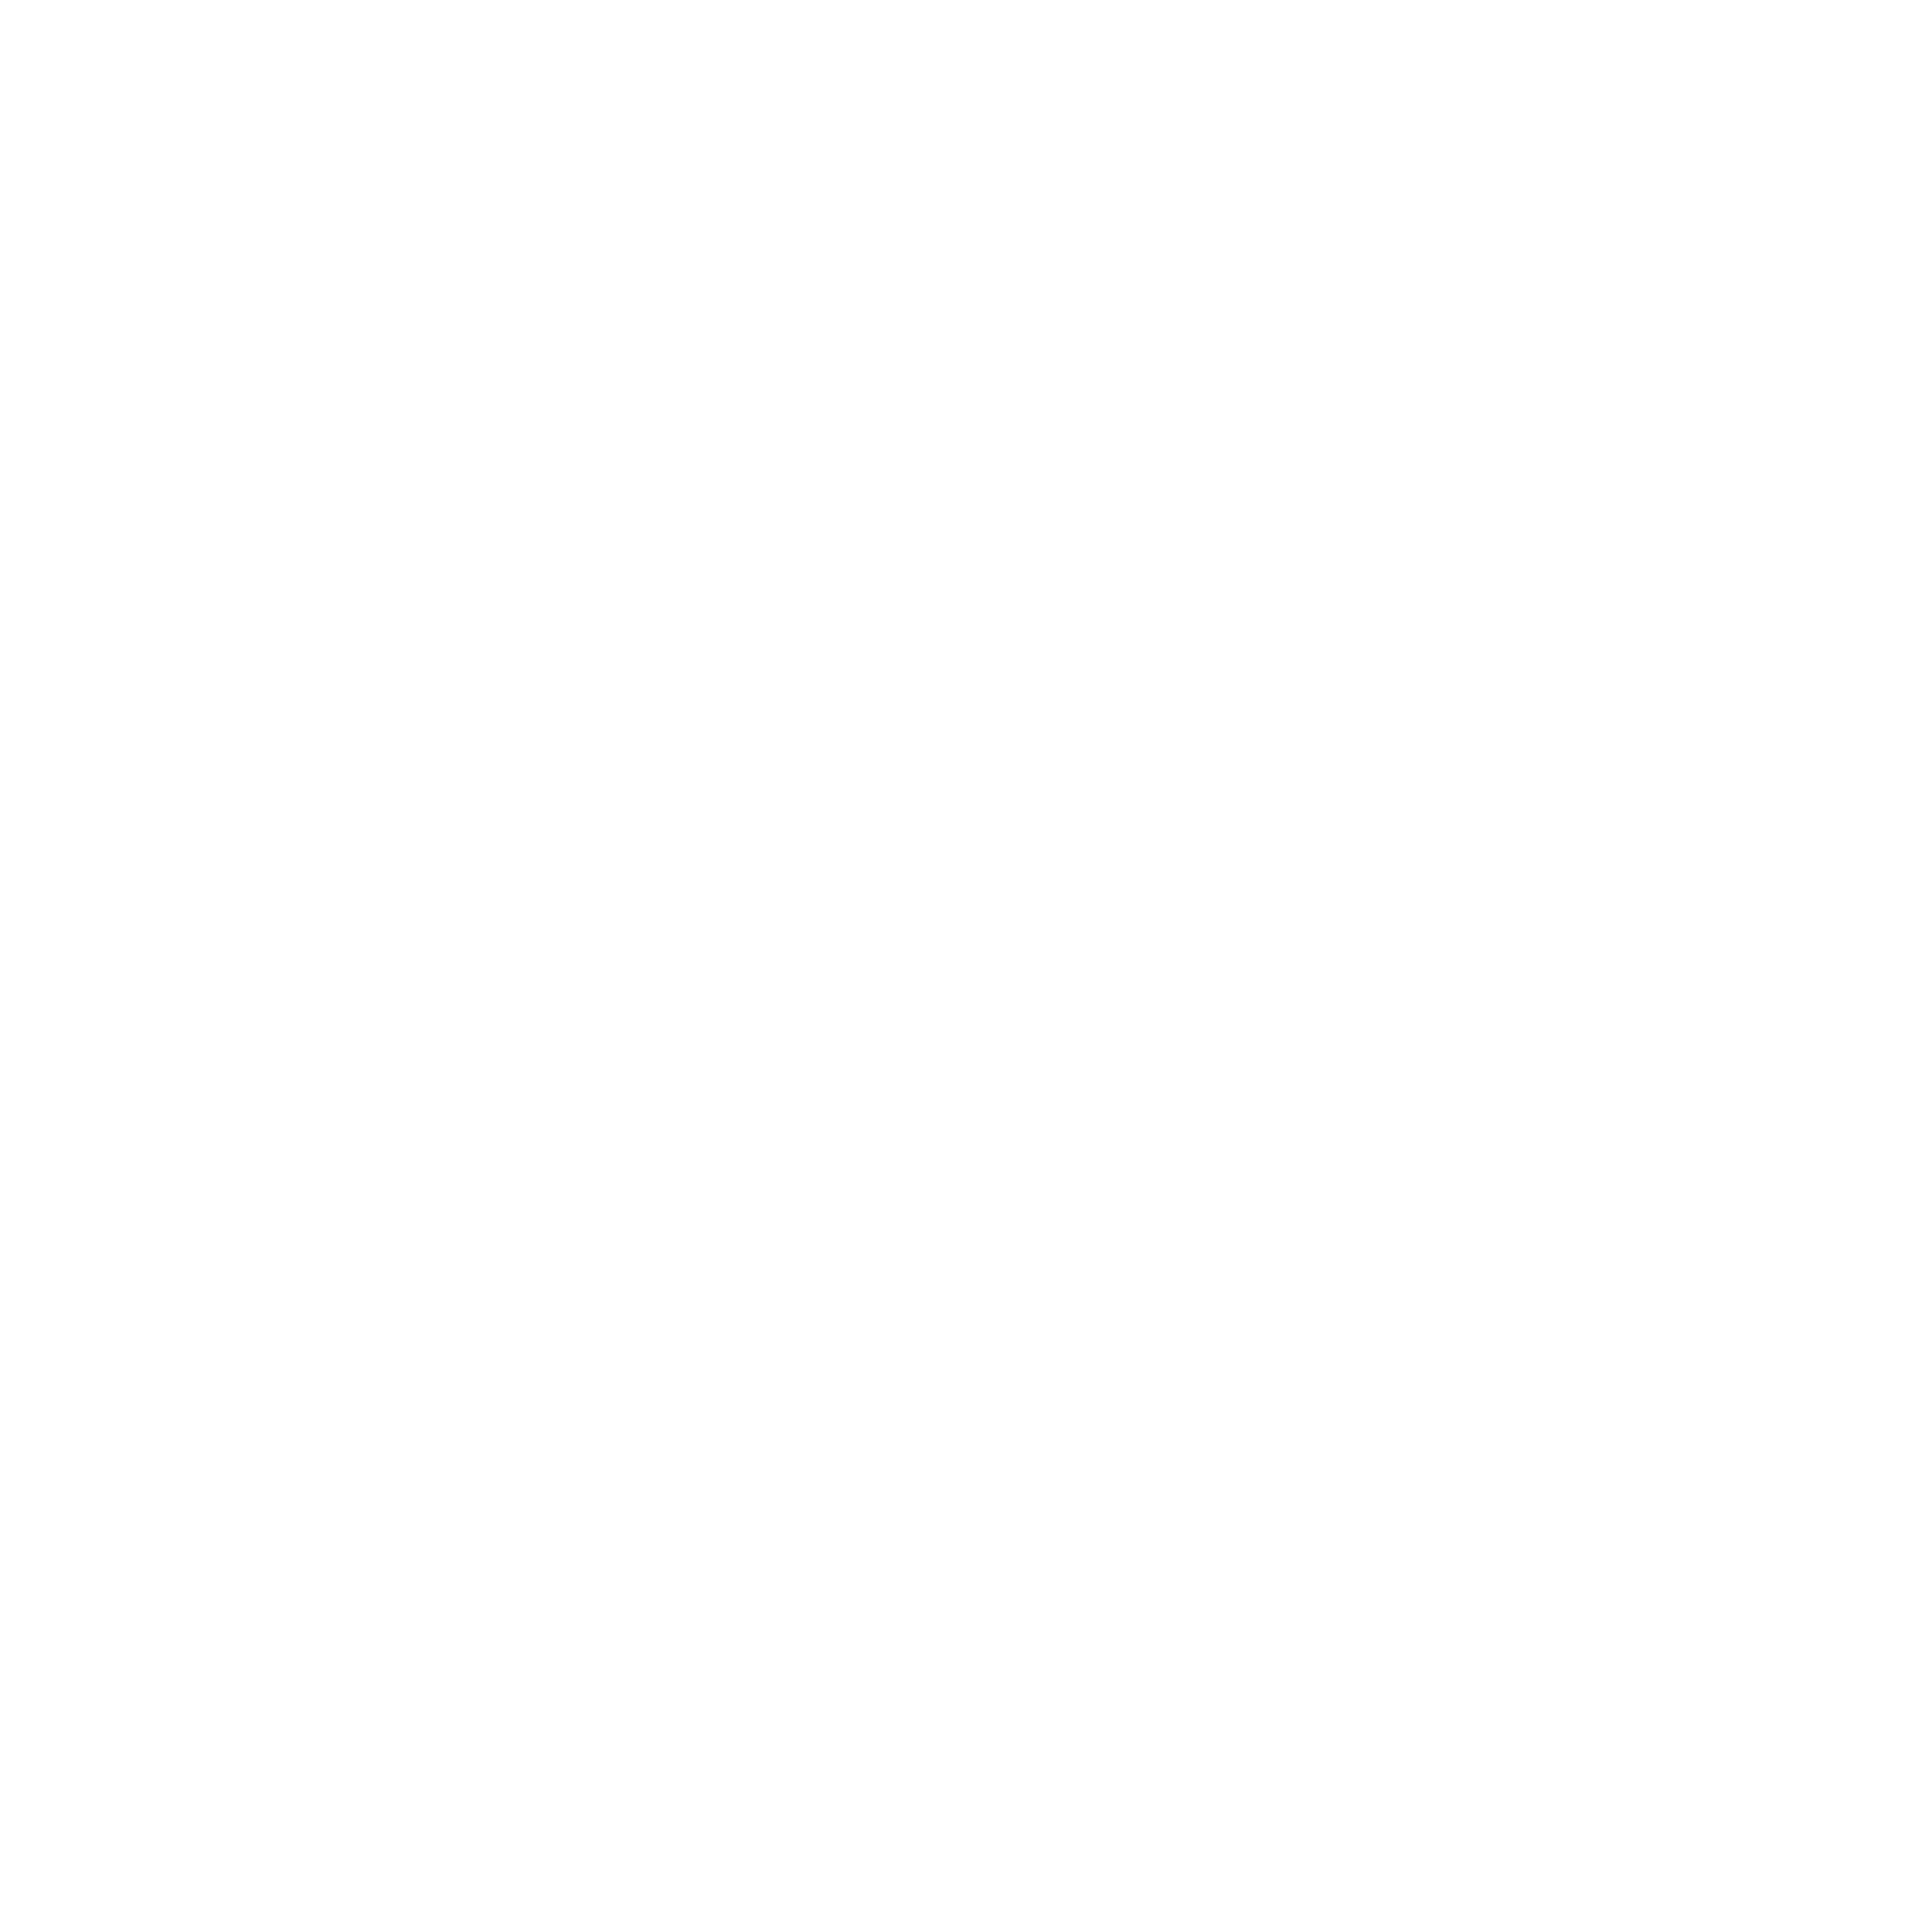 CLICKON C Mark - Square C - white PNG